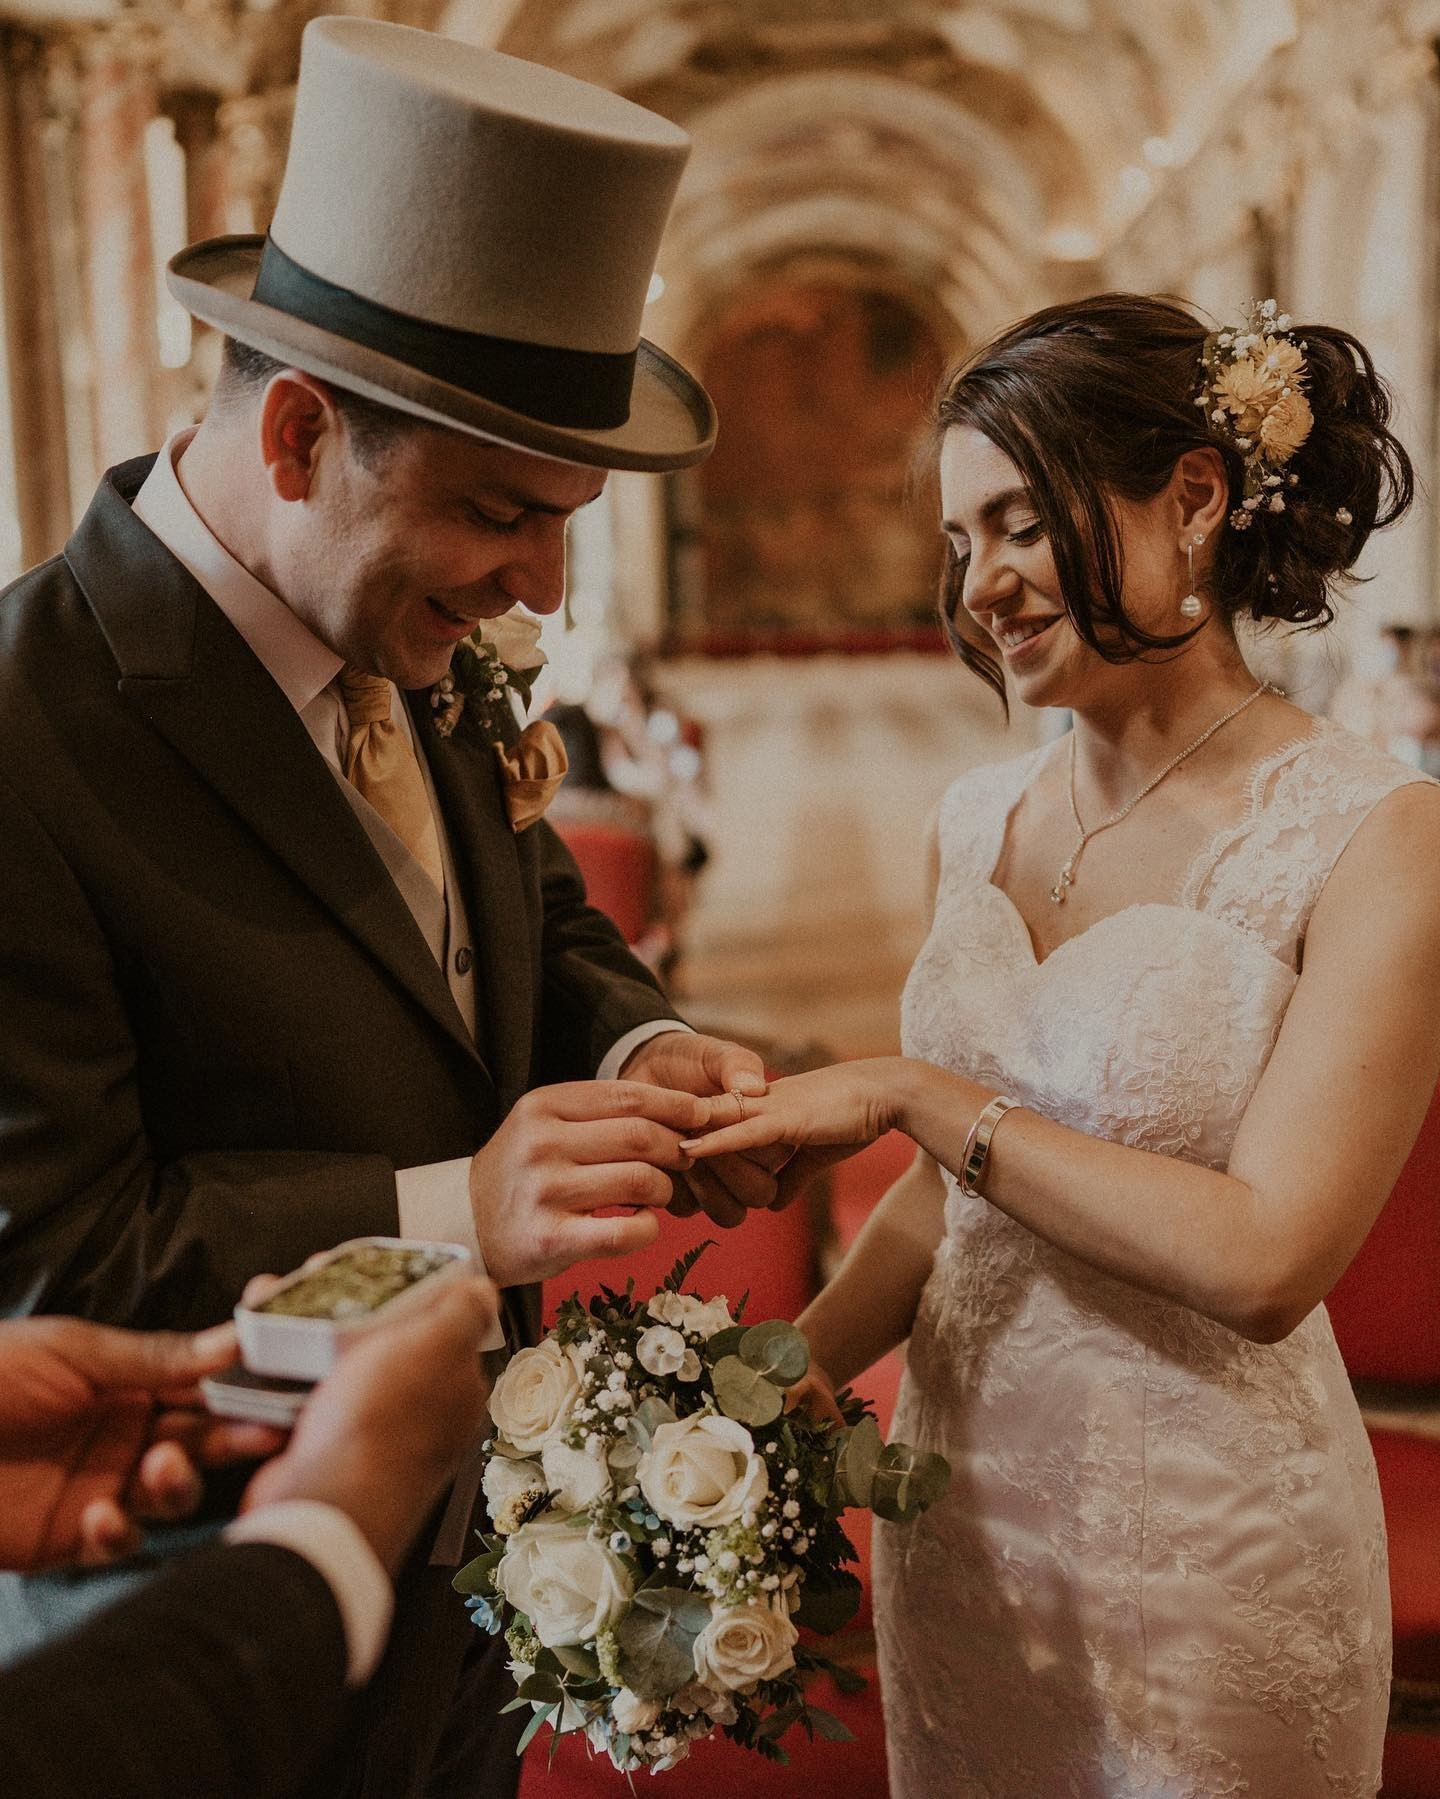 Wedding Photographer in France and Europe